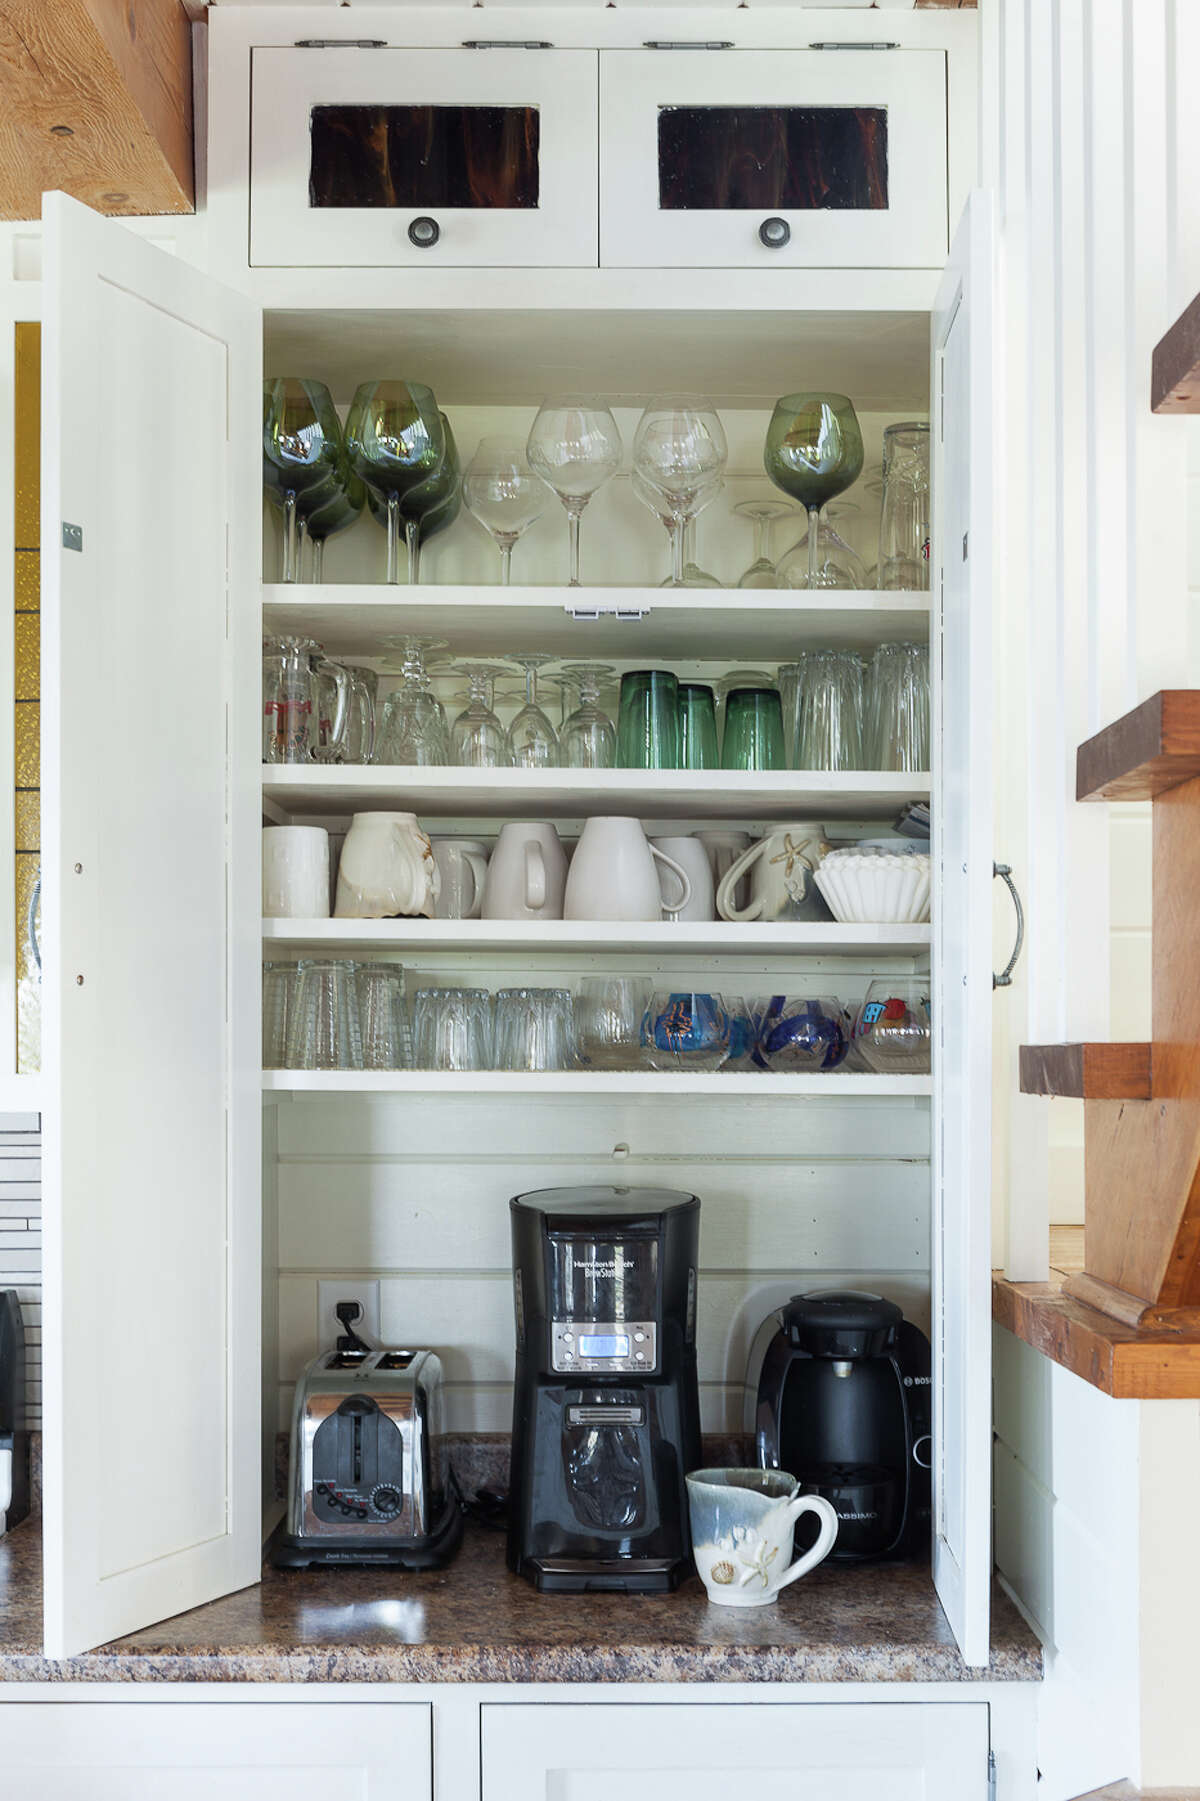 Small appliances drawers, cabinets and garages are extremely popular, says Nino Sitchinava, principal economist for the home website Houzz.